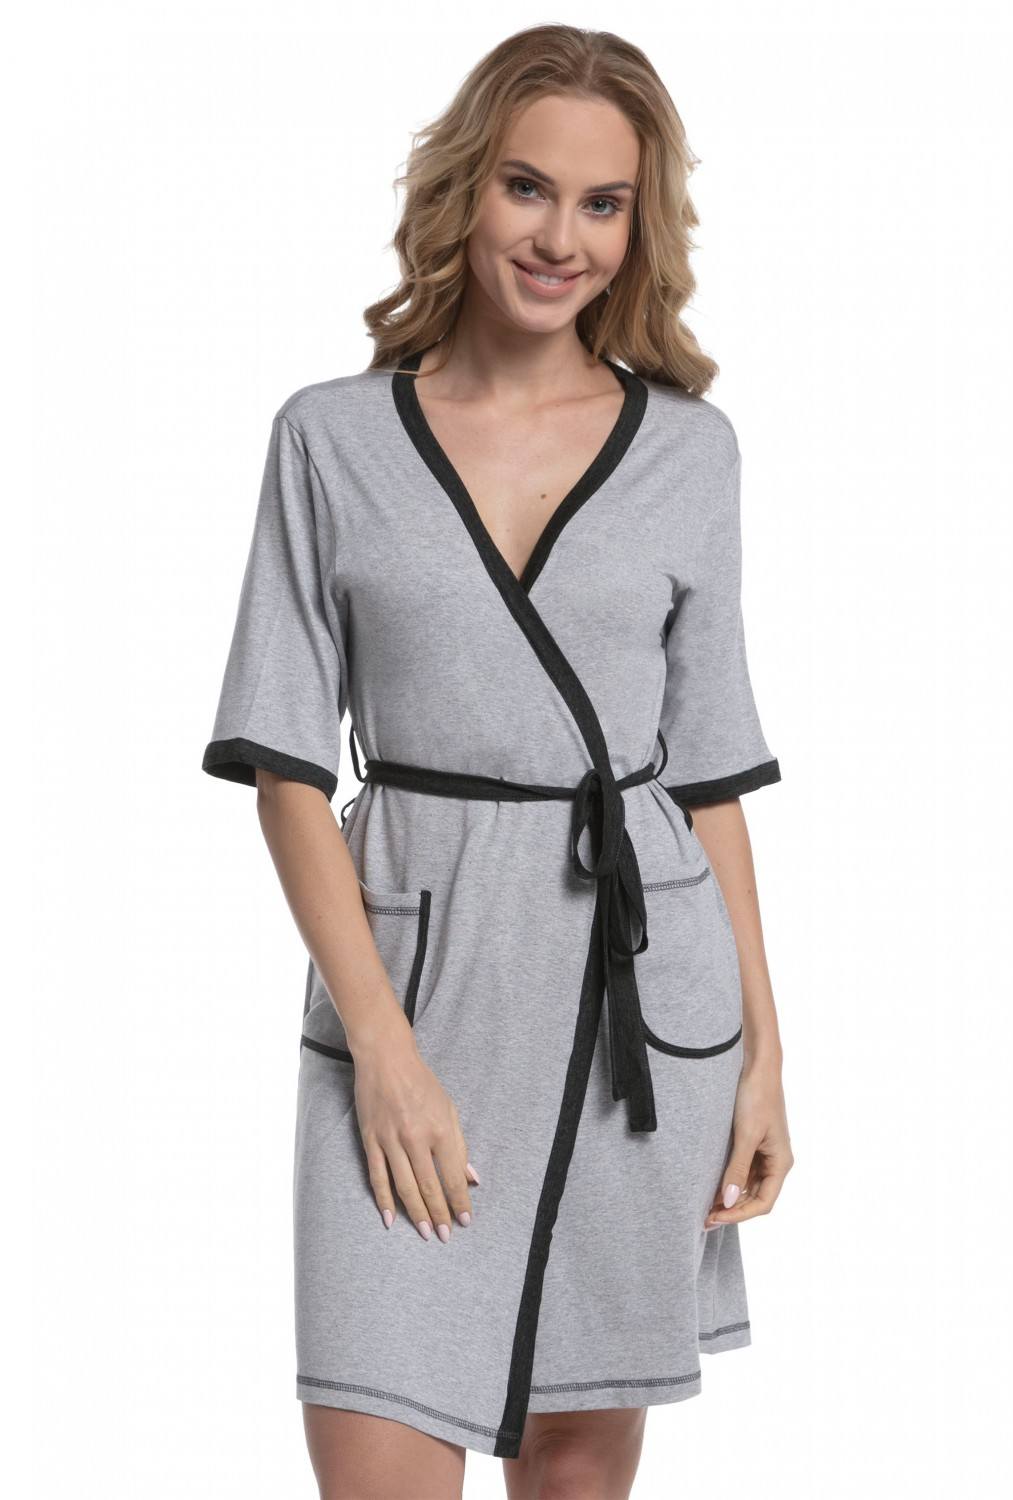 Women s Maternity Hospital Nightie   Robe. SOLD SEPARATELY. 077p 84a7843cd